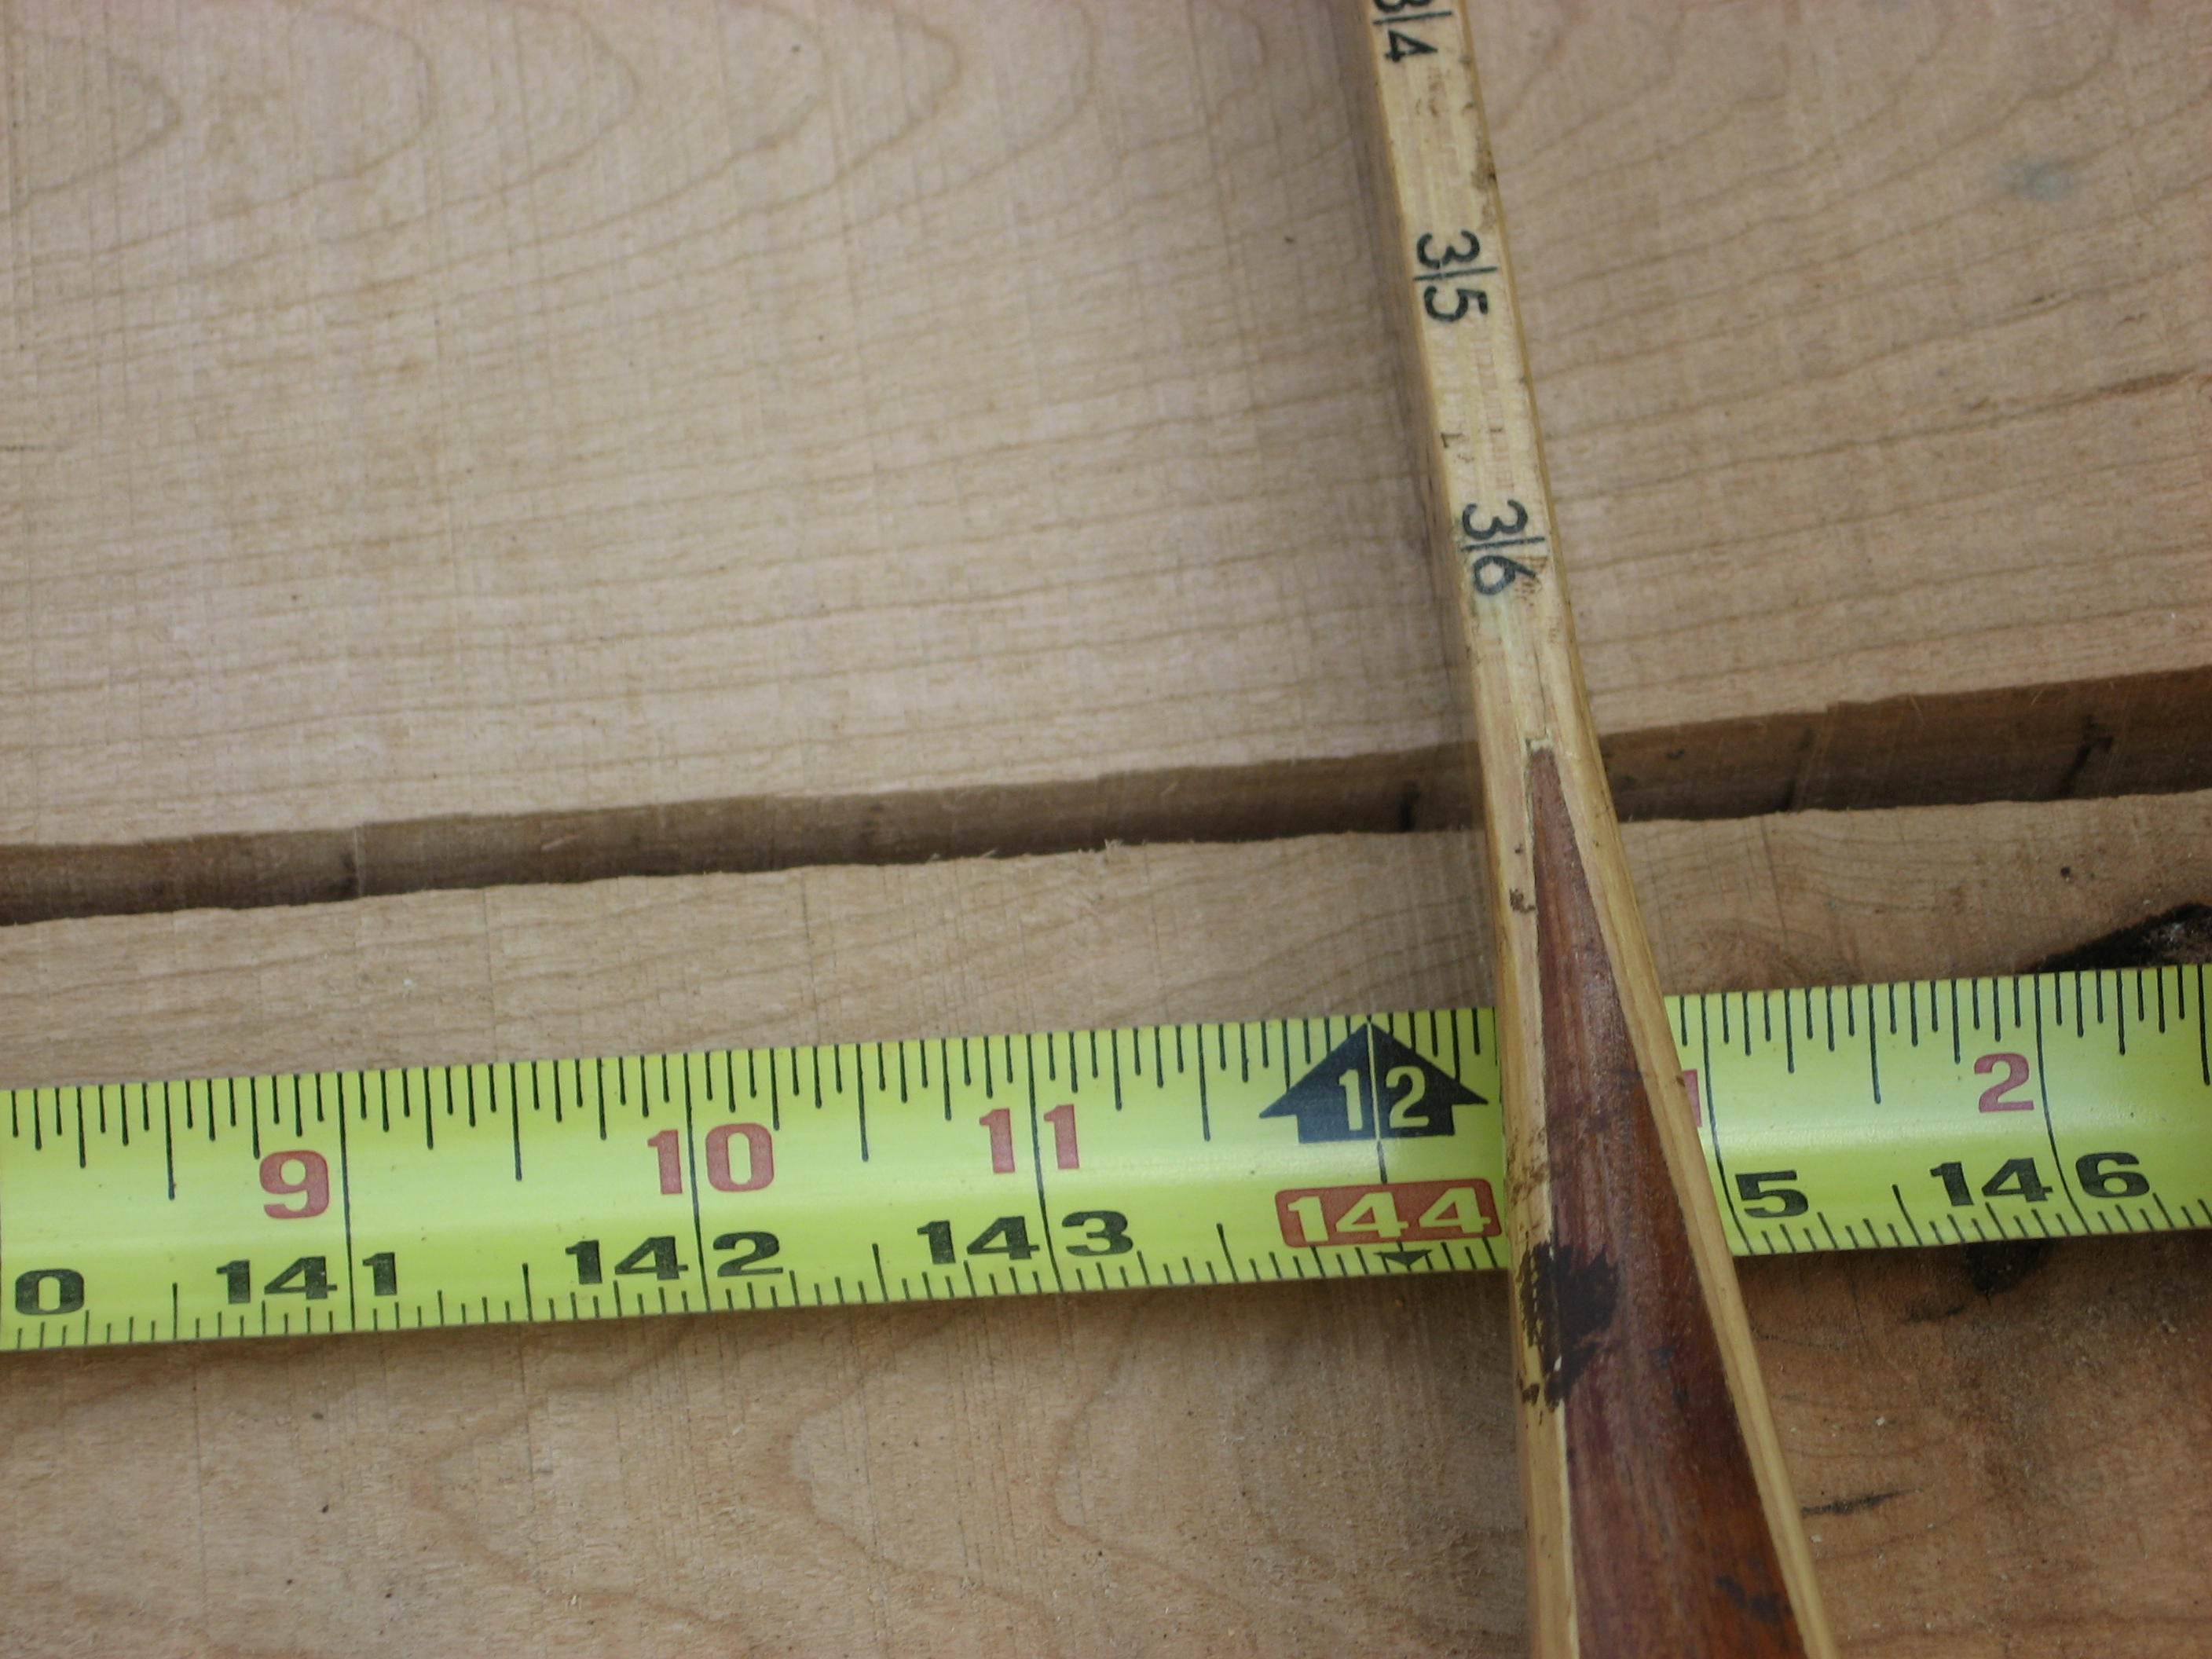 4/4 +1/8 over grade cherry lumber, random widths and 8-12 ft lengths.